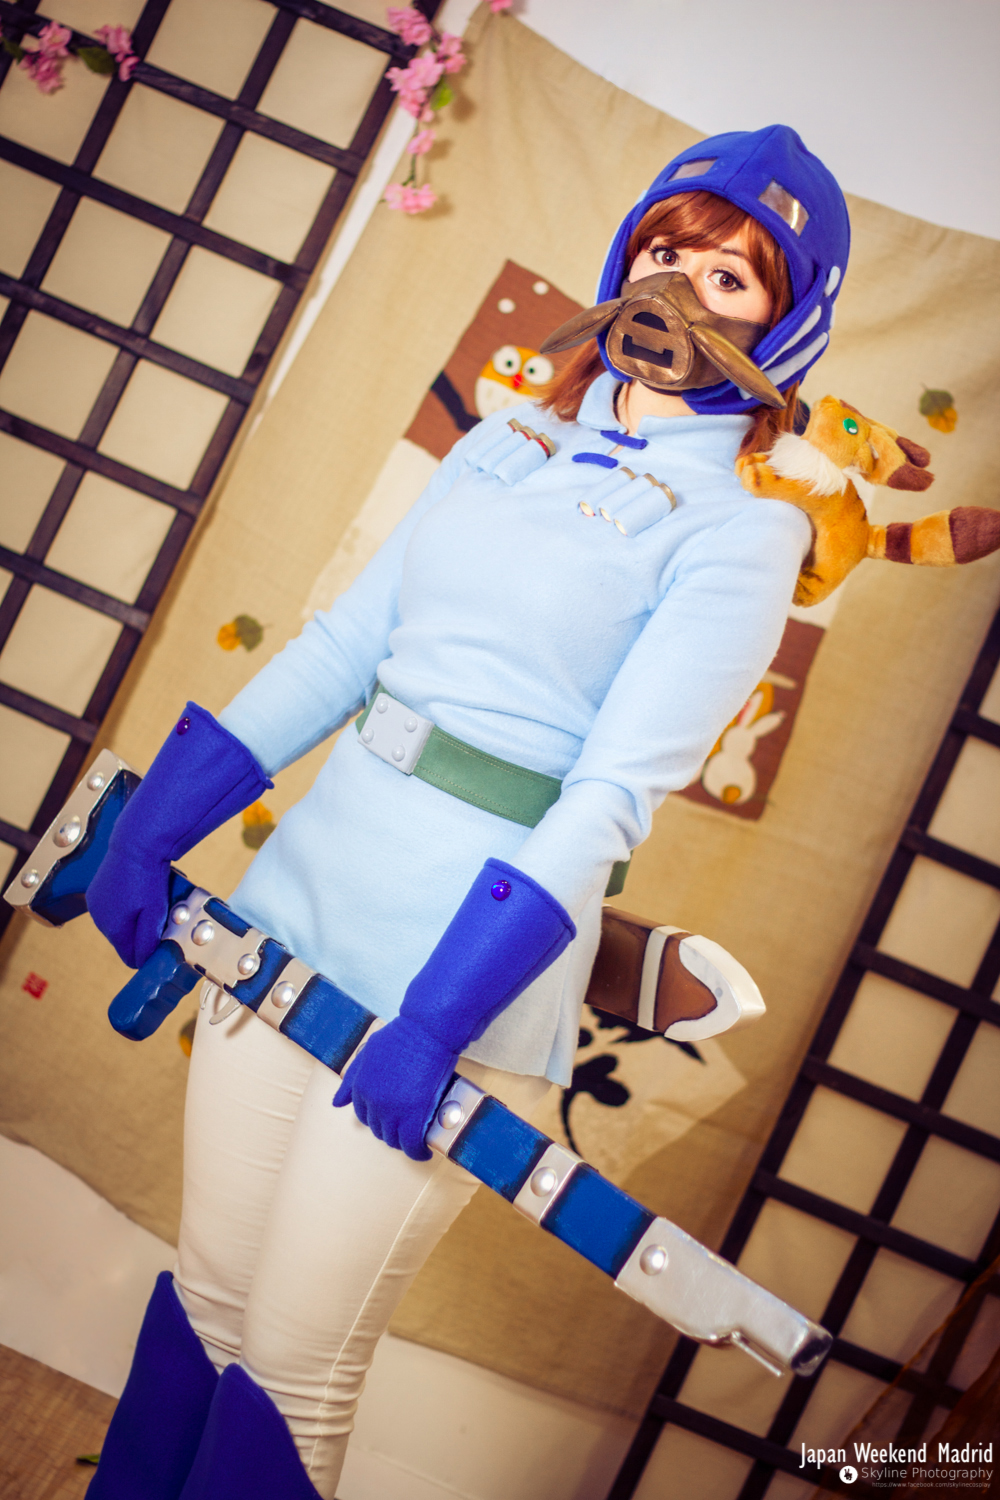 nausicaa of the valley of the wind on ghibli cosplay